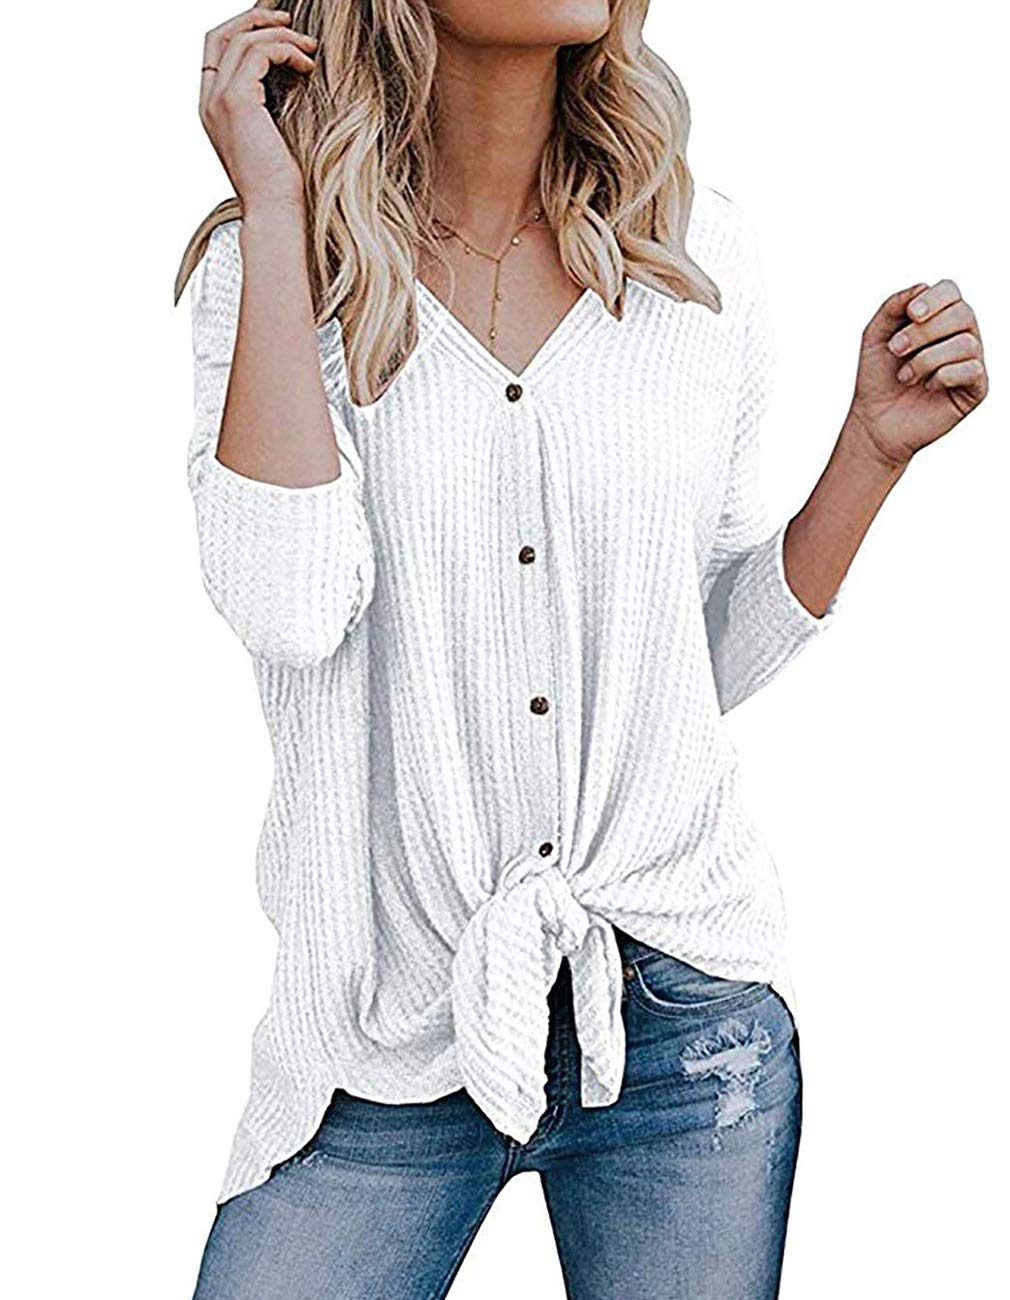 Miskely Women's Waffle Knit Tunic Tops Tie Knot Henley Tops Blouse Casual Loose Bat Wing Plain Shirts (Large, White)